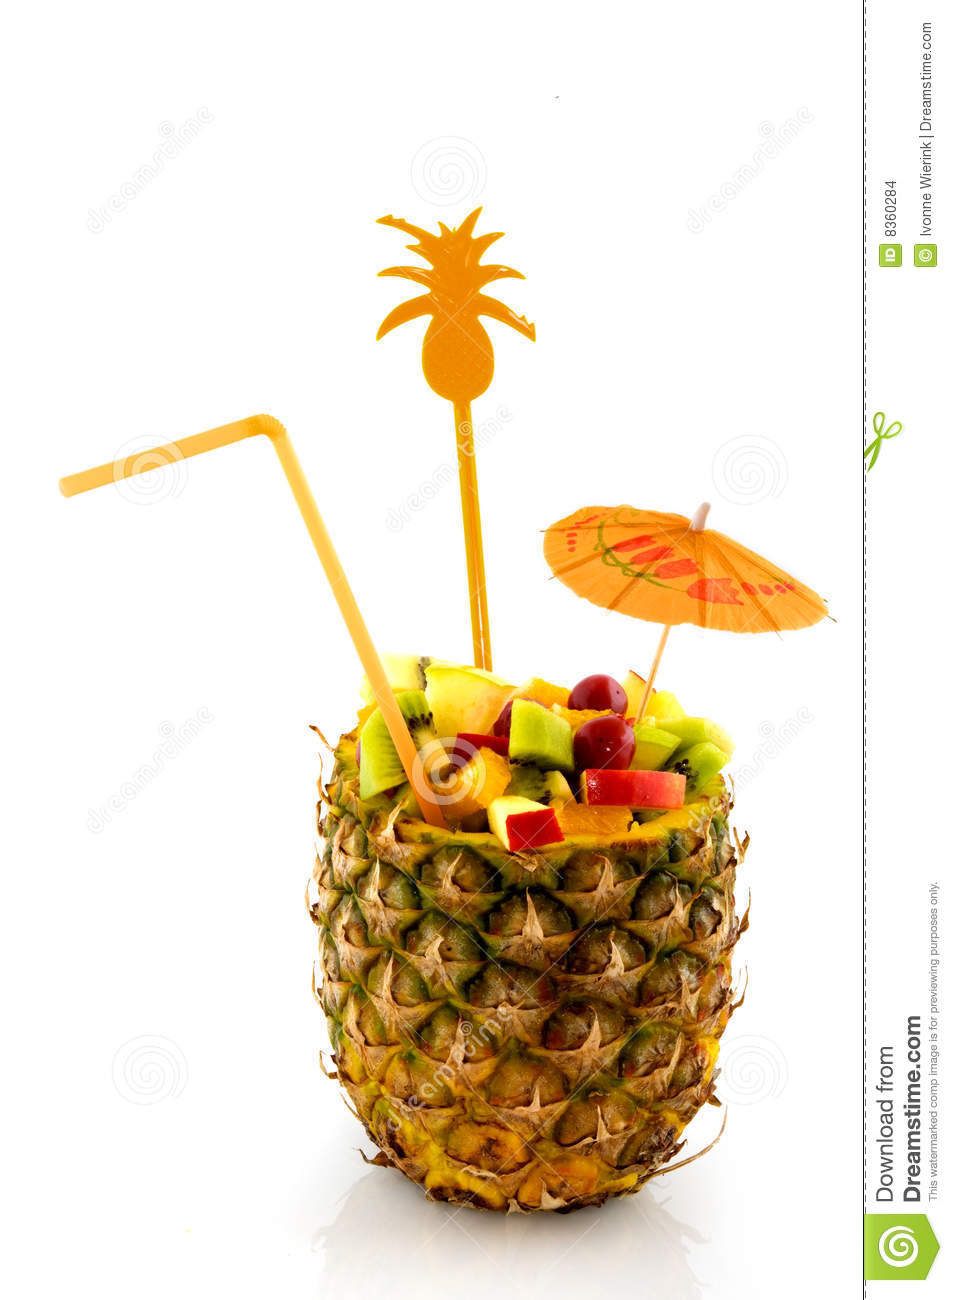 Tropical fruit cocktail prepared in pineapple.